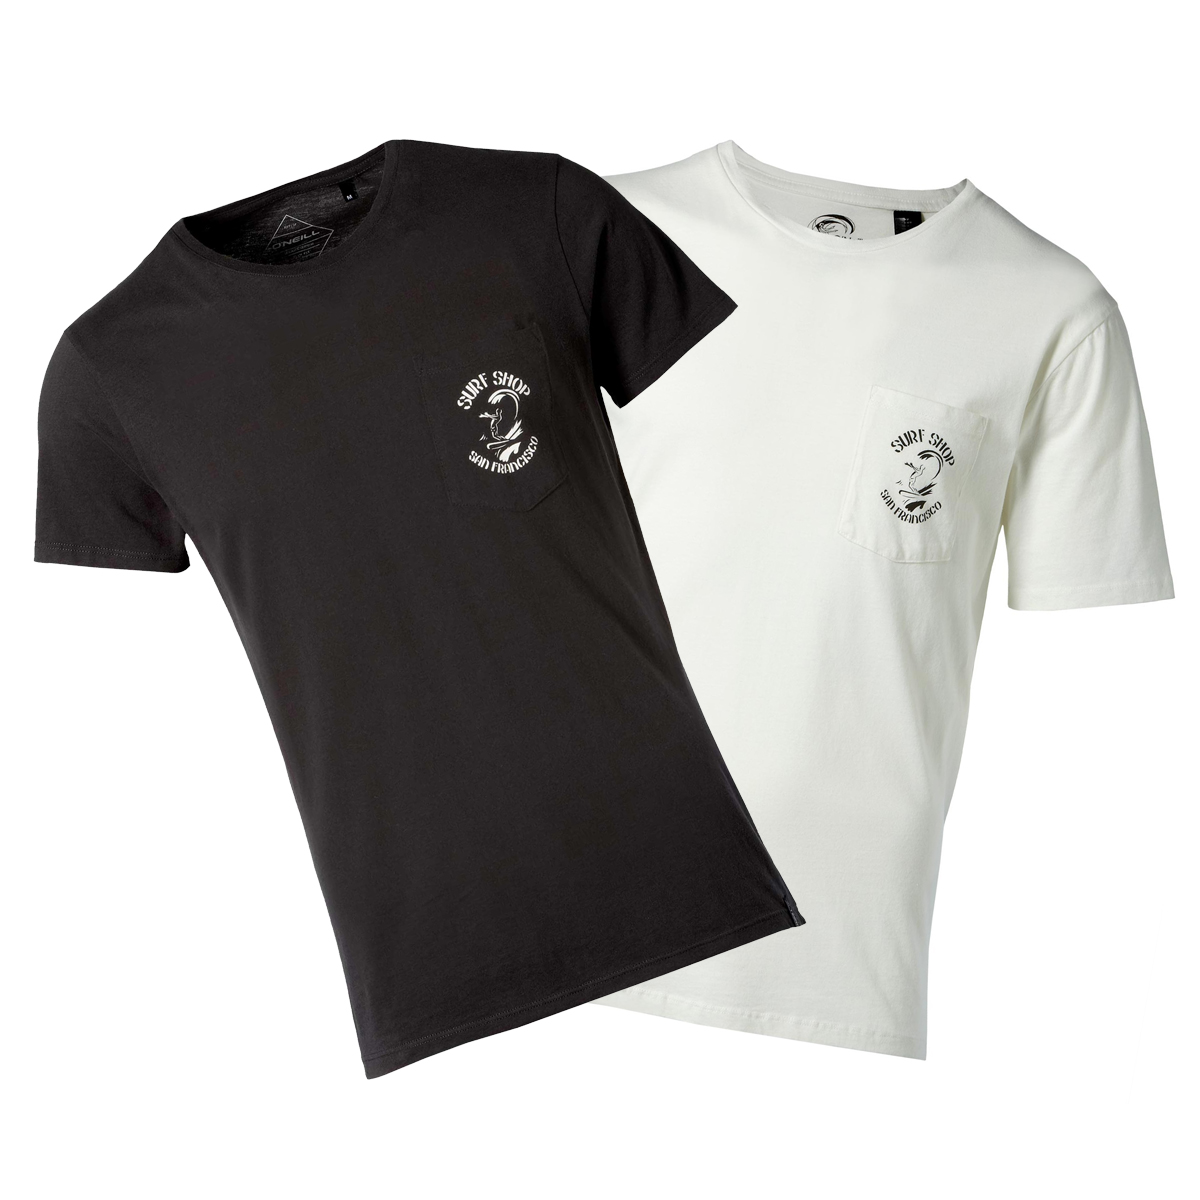 black t-shirt and white t-shirt